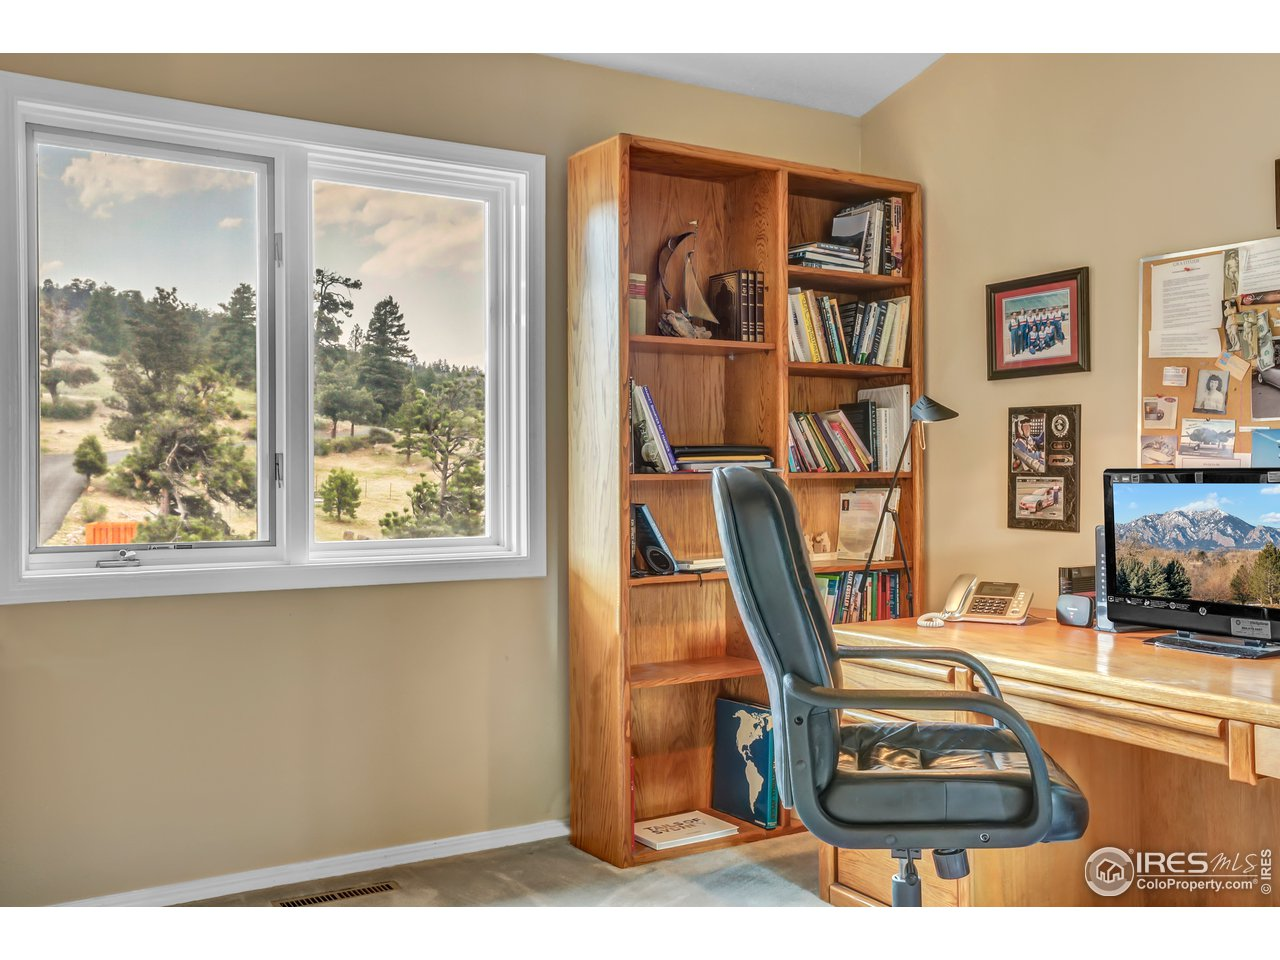 2nd bedroom used as an office